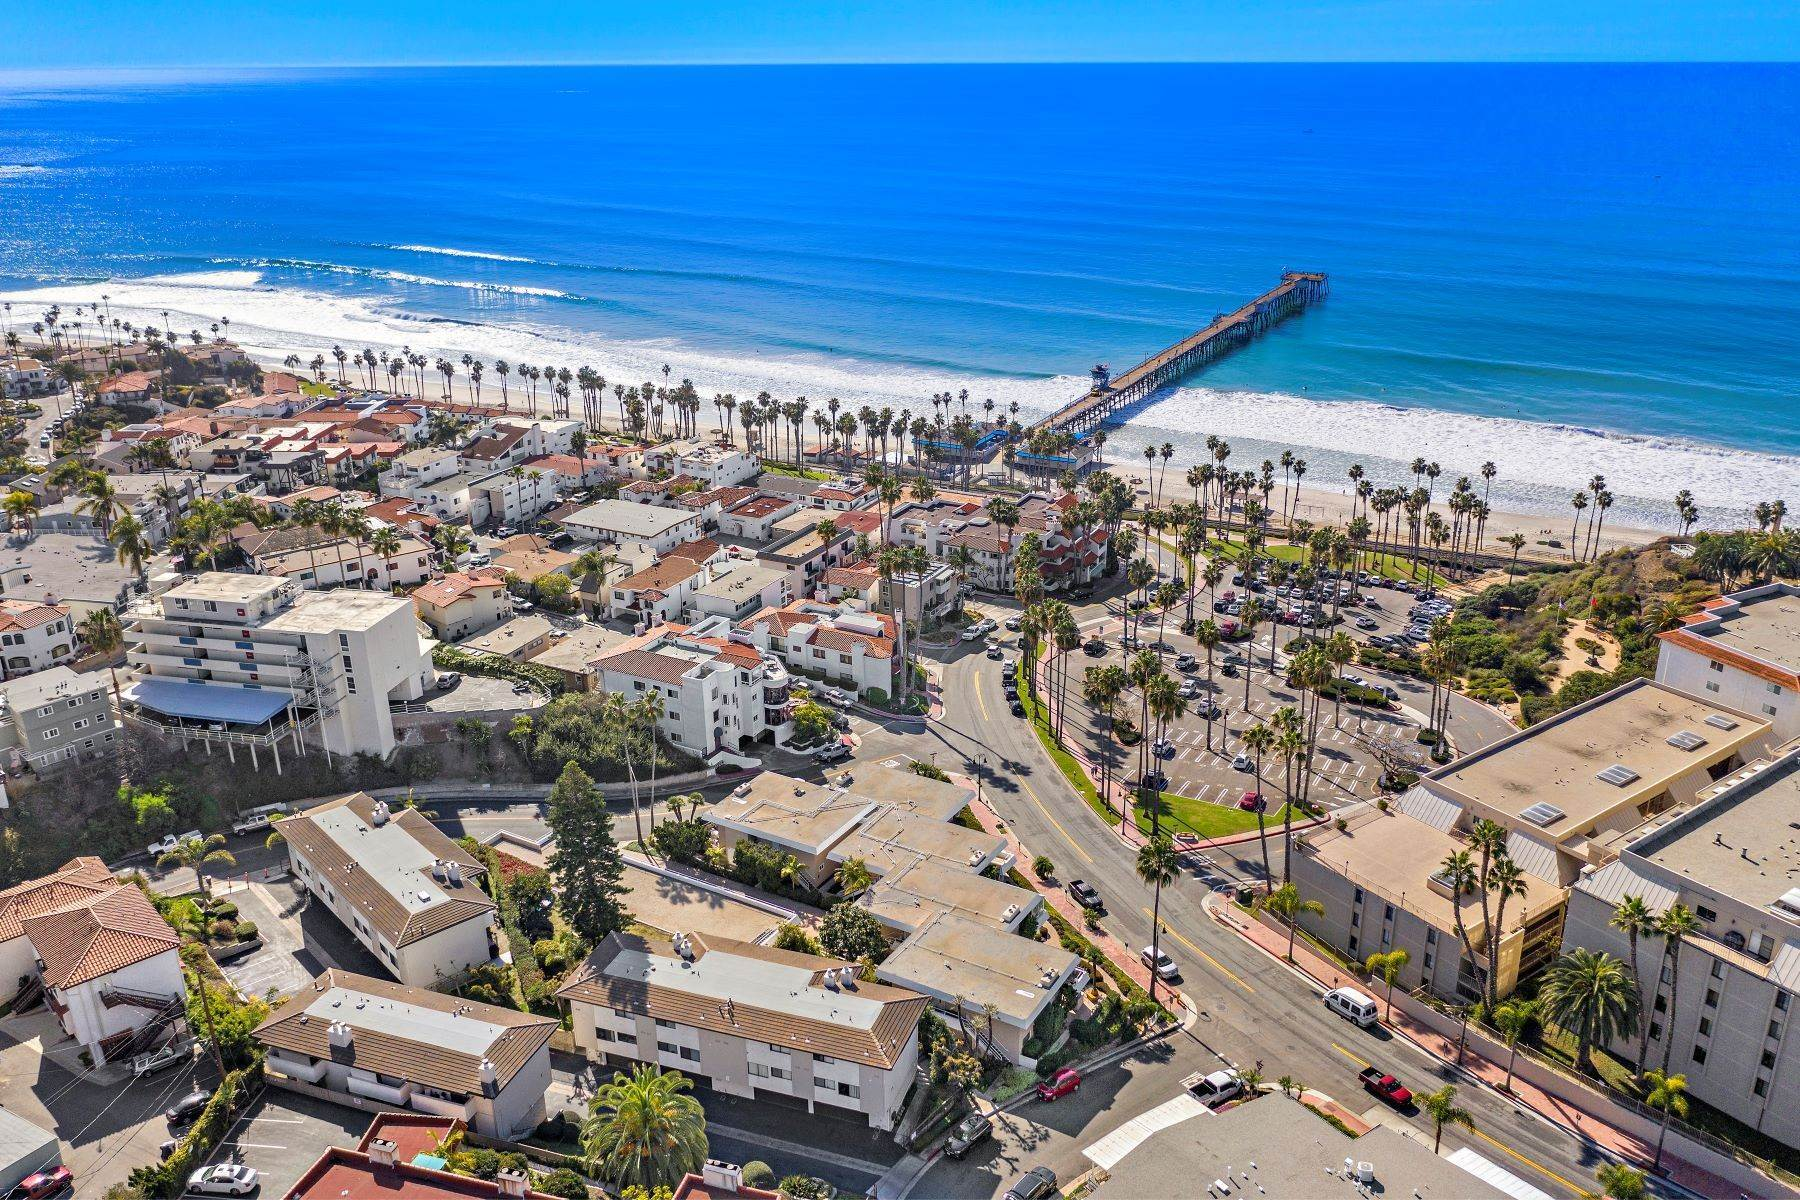 36. Condominiums for Sale at 321 Acebo Lane Unit #C, San Clemente, CA 92672 321 Acebo Lane, Unit #C San Clemente, California 92672 United States